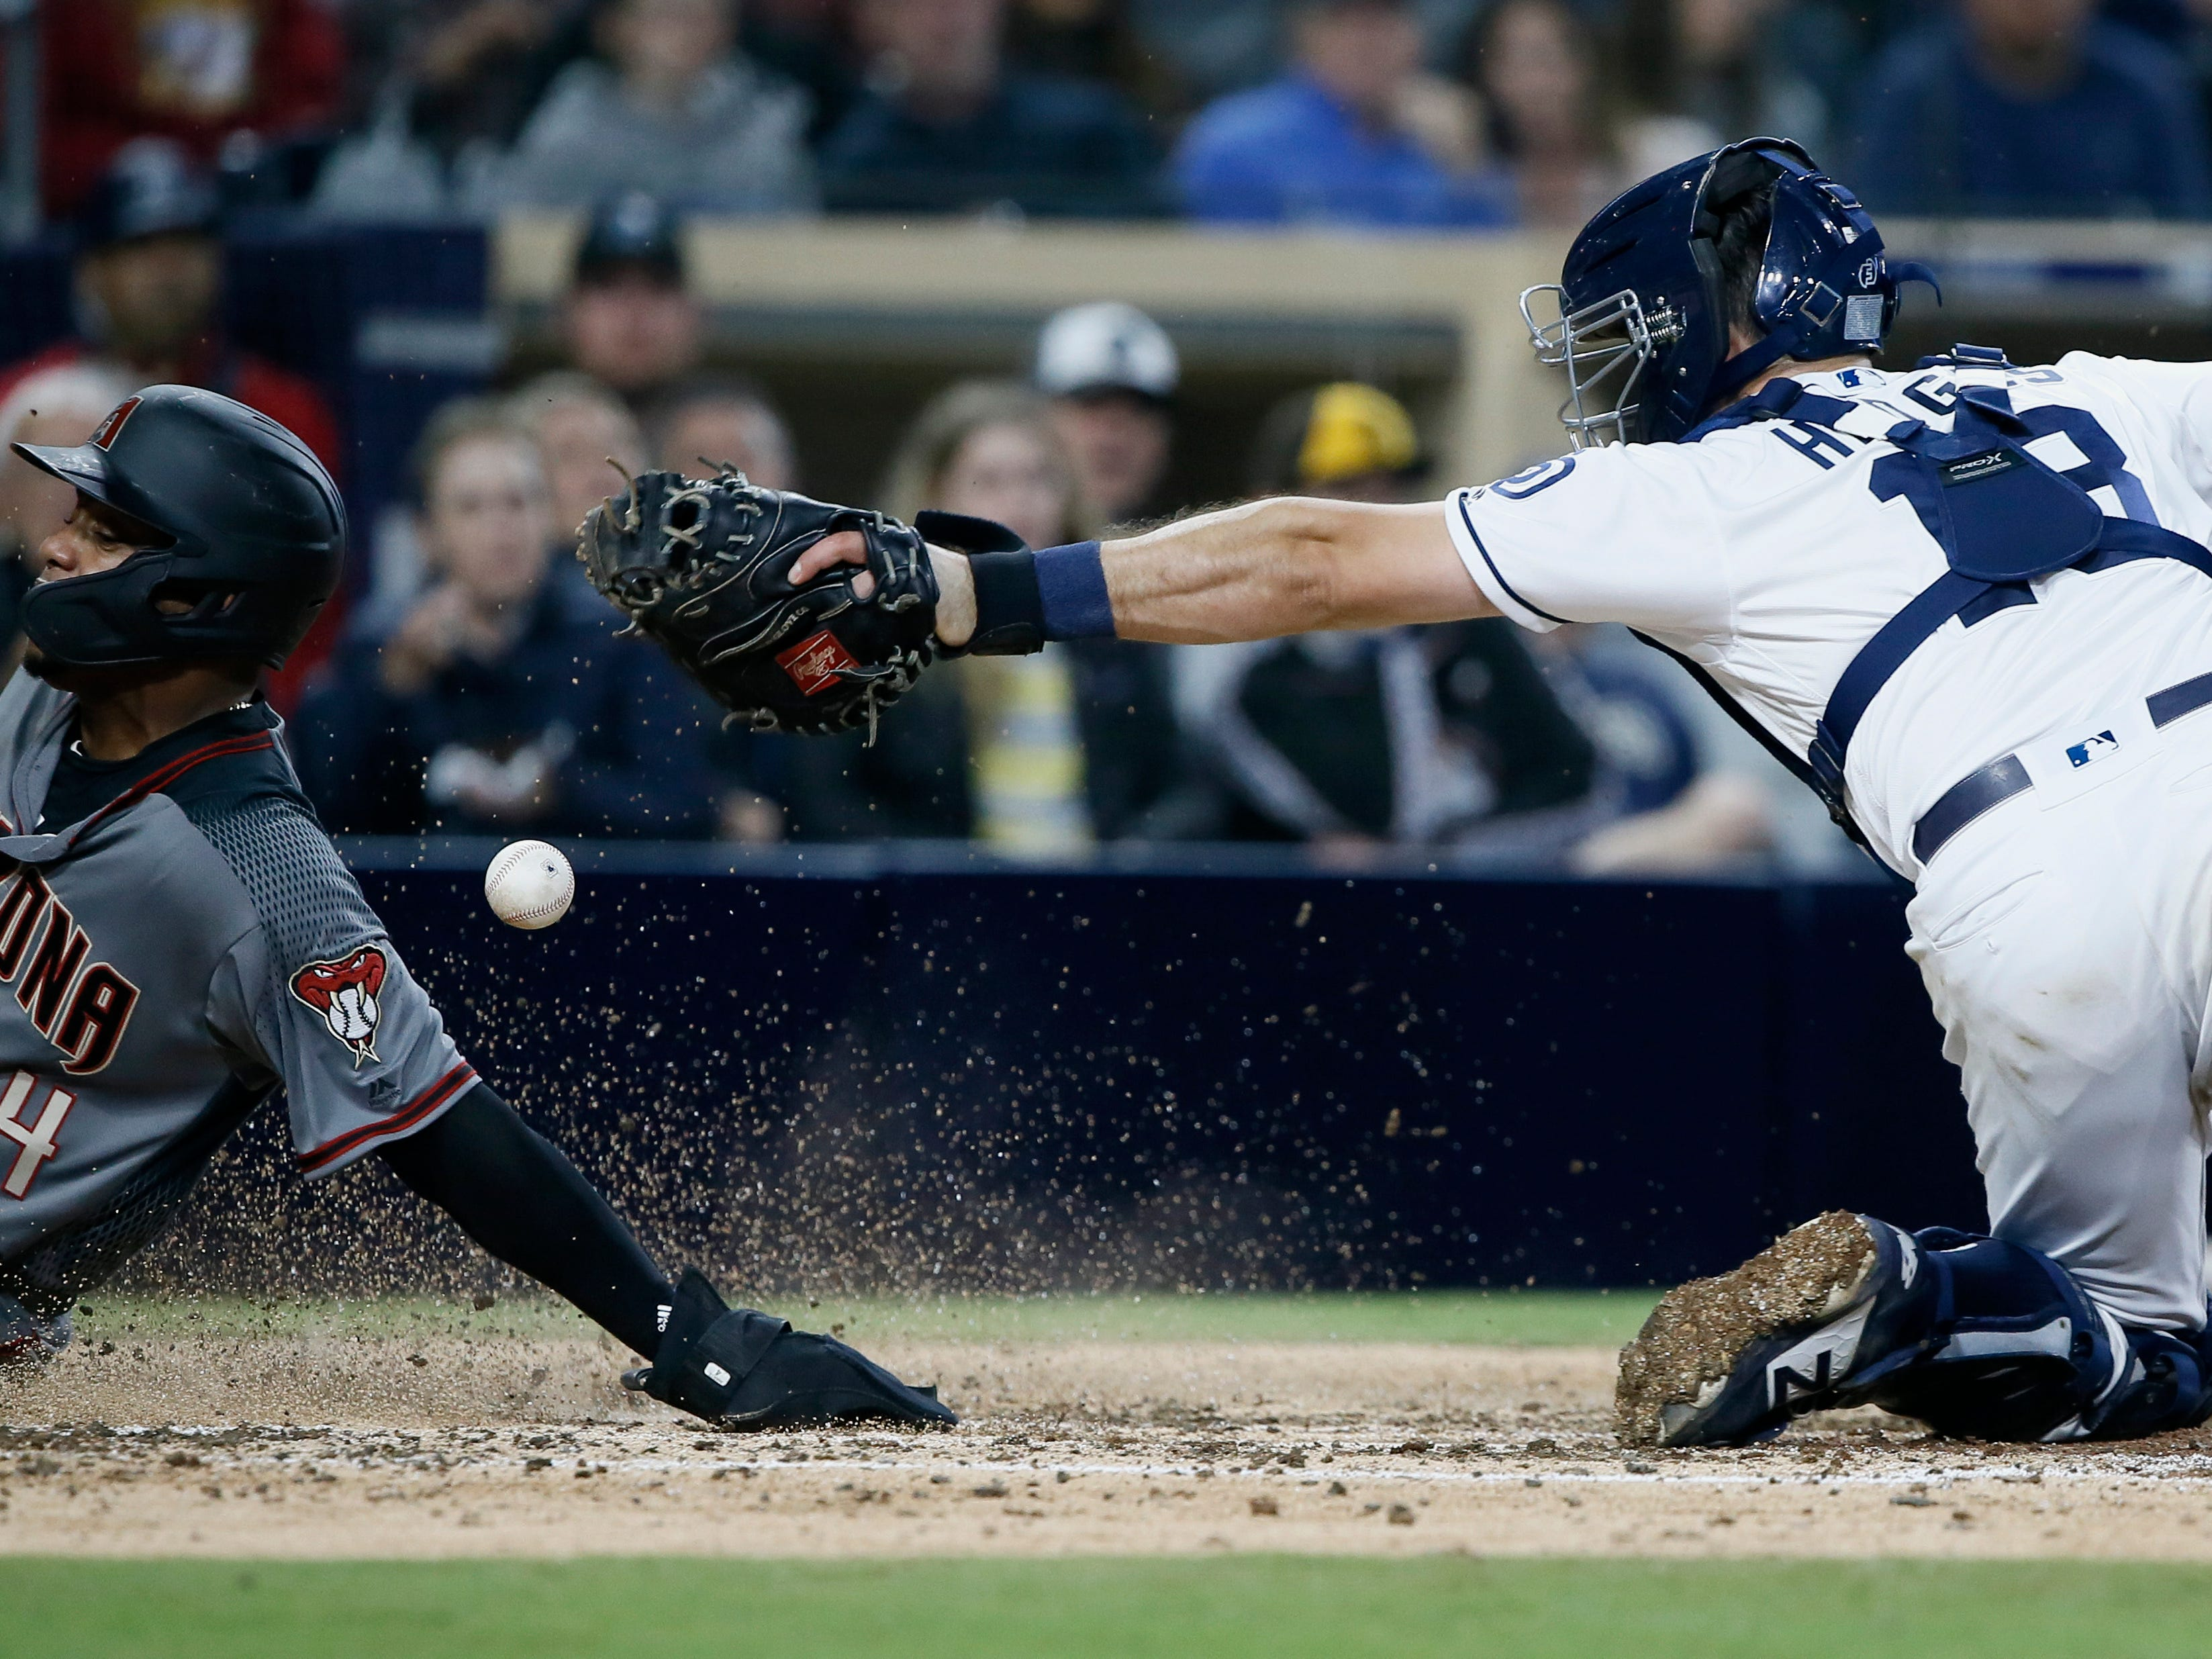 Arizona Diamondbacks' Ketel Marte, left, scores as San Diego Padres catcher Austin Hedges loses the ball on the tag during the fifth inning of a baseball game in San Diego, Monday, April 1, 2019. (AP Photo/Alex Gallardo)